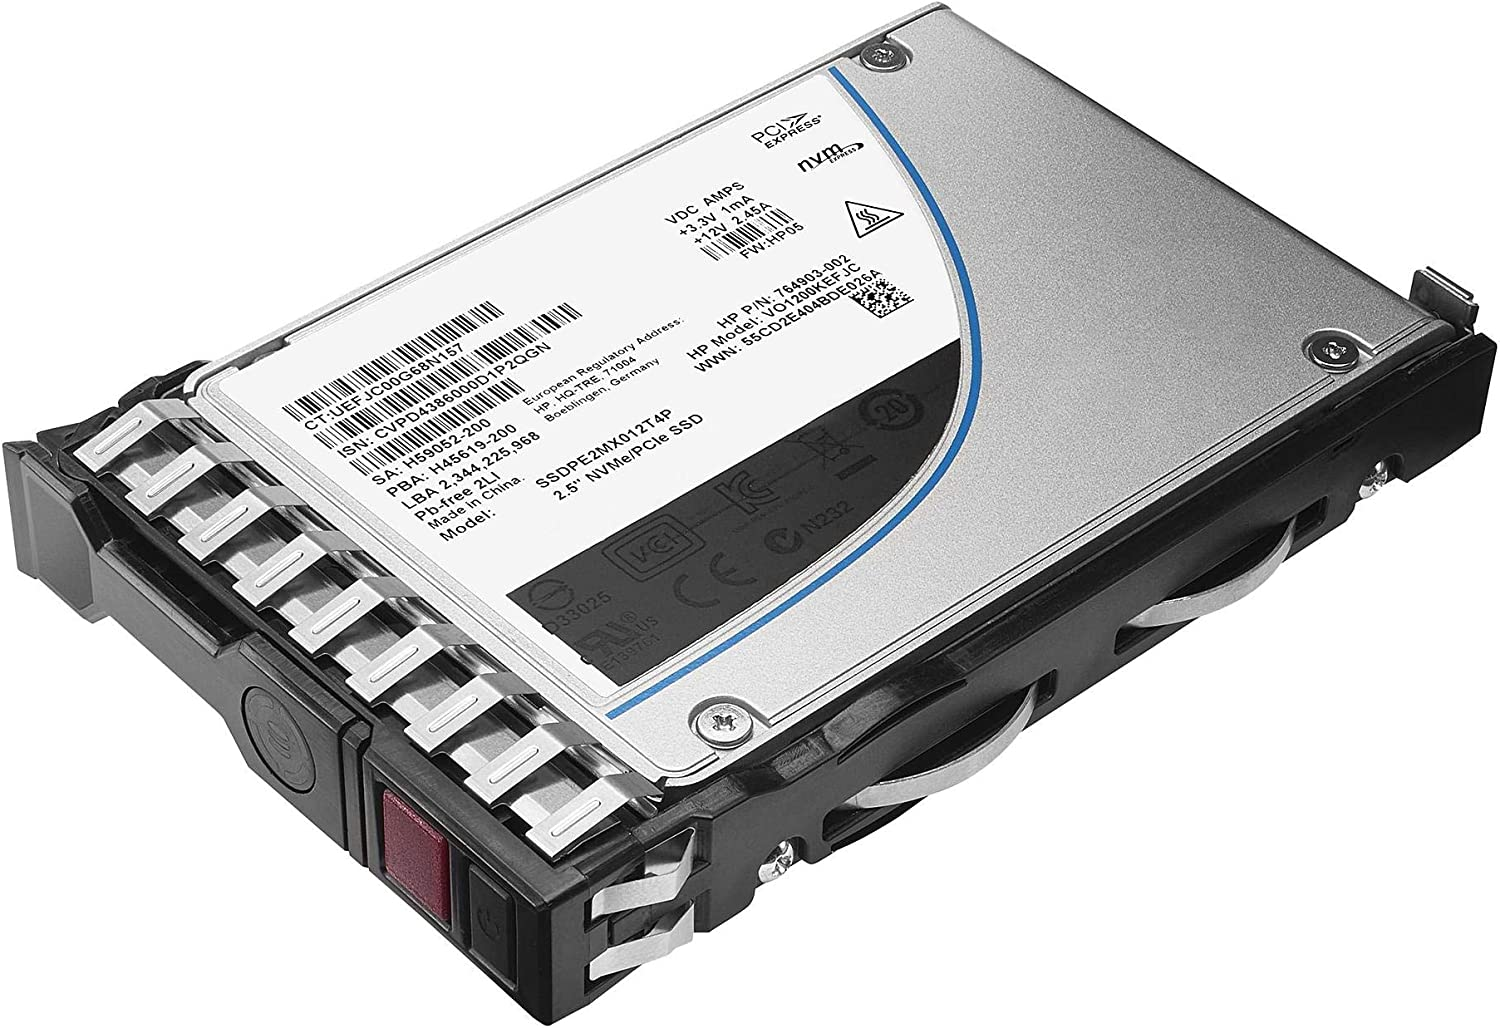 HPE Read Intensive Solid State Drive Hot-Swap firewire/_esata 2.5 inches 872855-B21